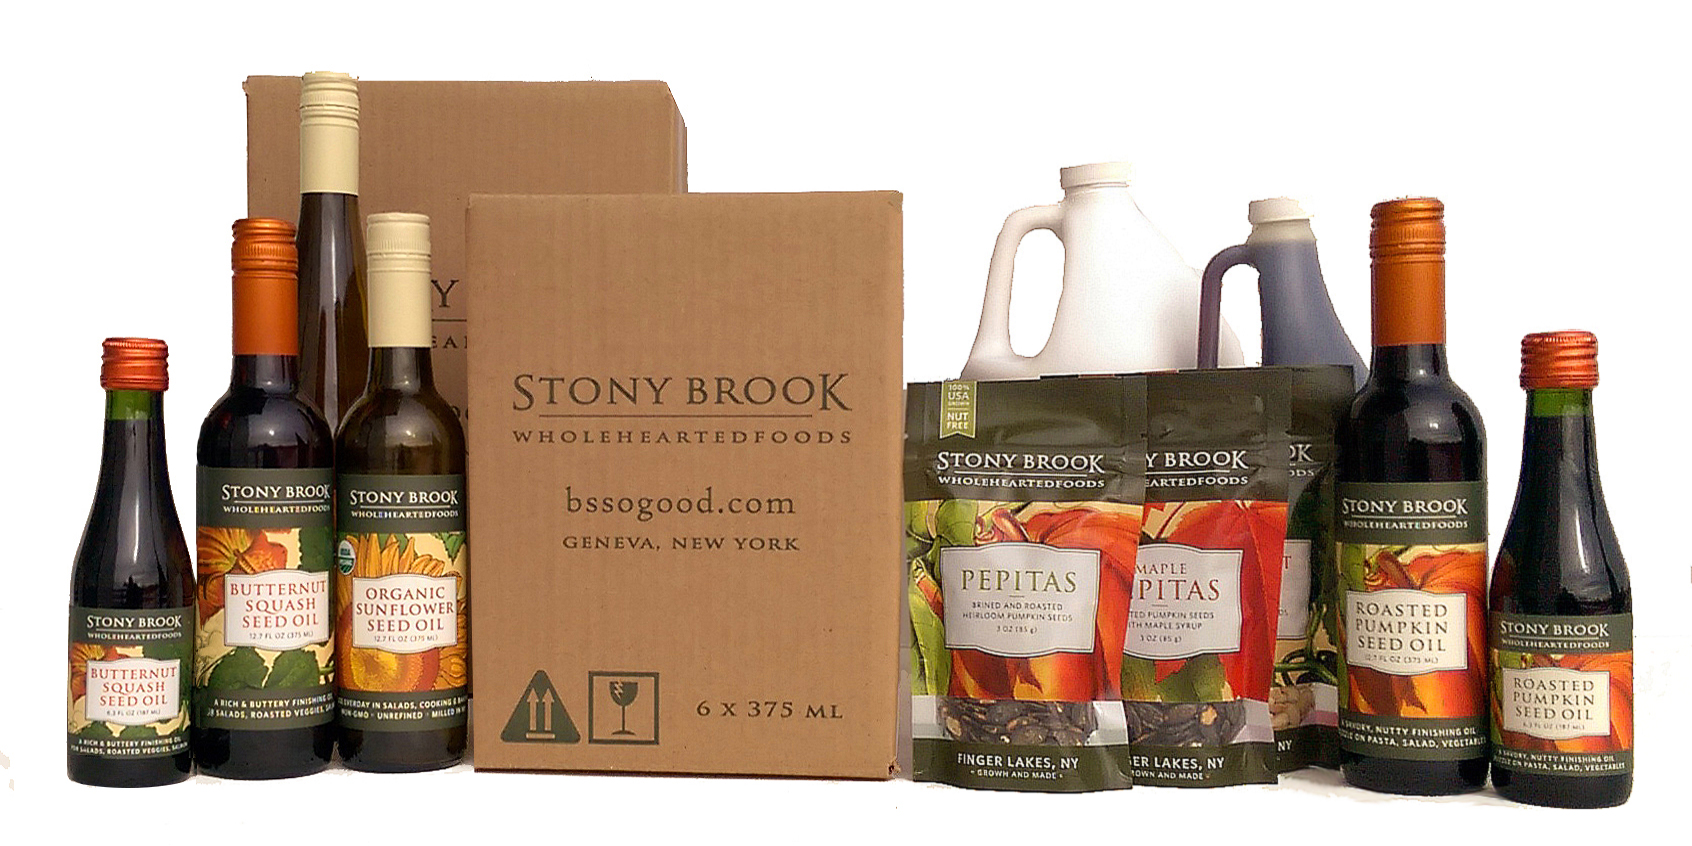 Stony Brook oils and seeds - bulk and case discounts